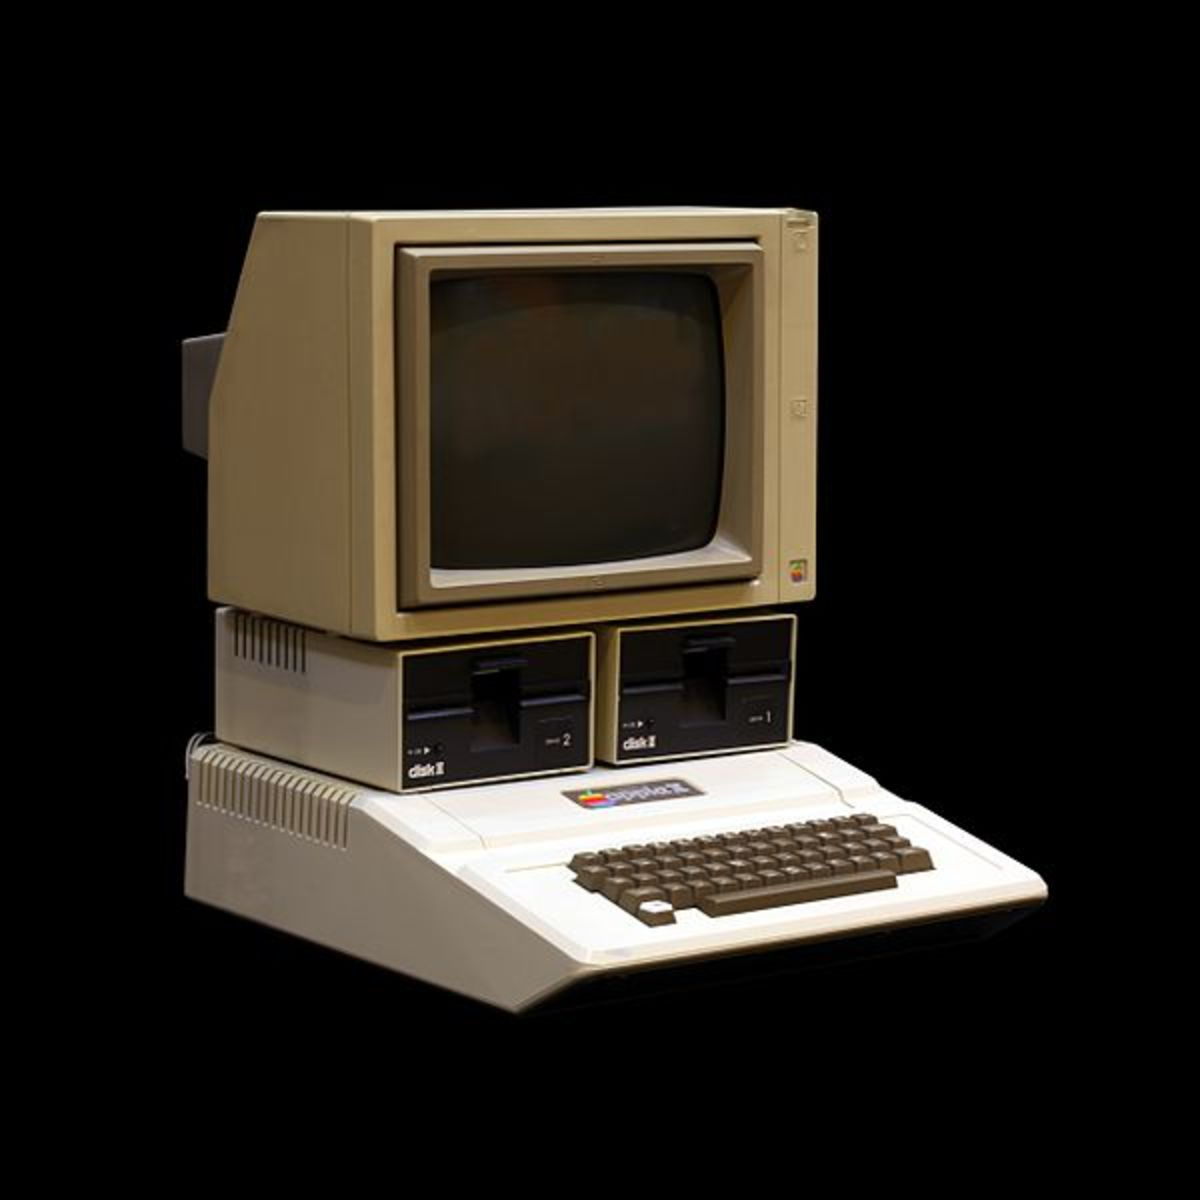 Apple II, the personal computer of 1977.